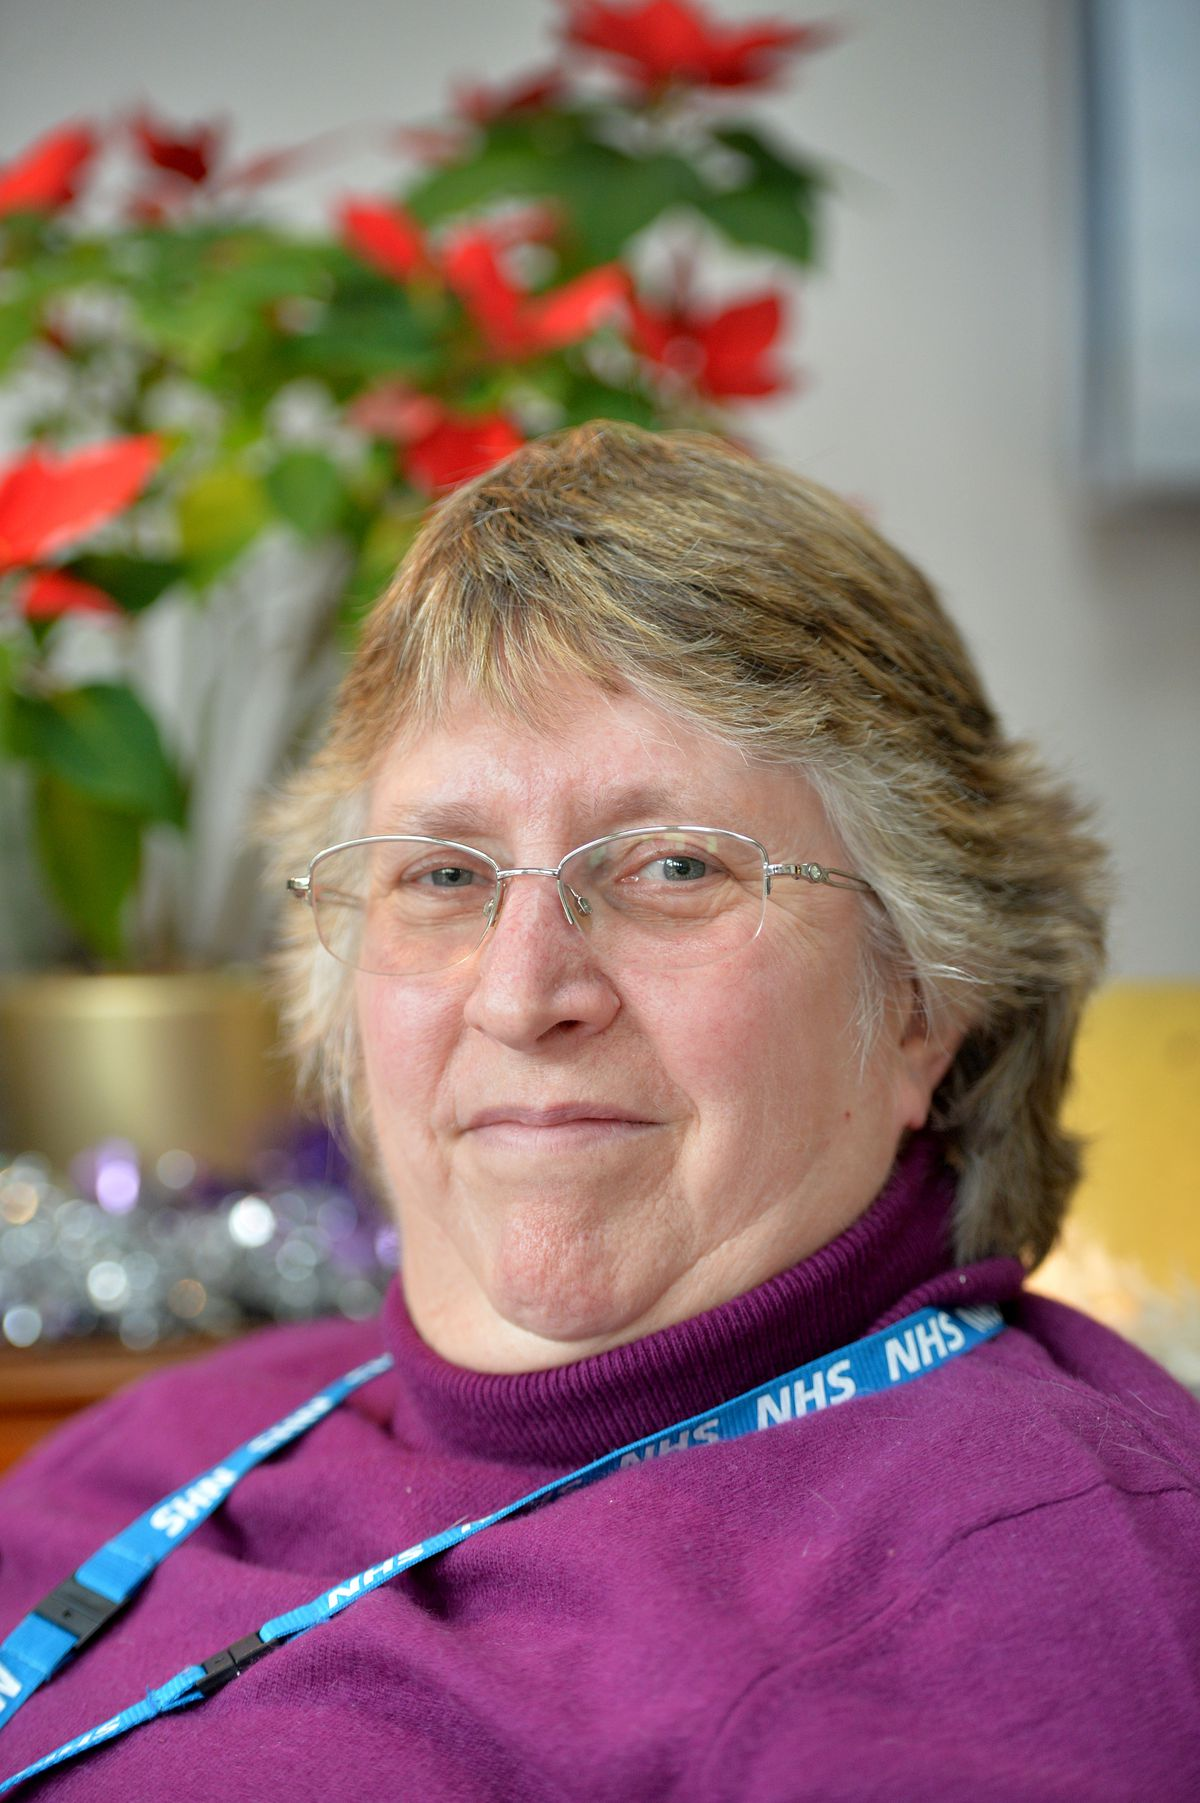 Sarah Clarke from Hodnet has been given an MBE in the New Year Honours for her services during the pandemic.